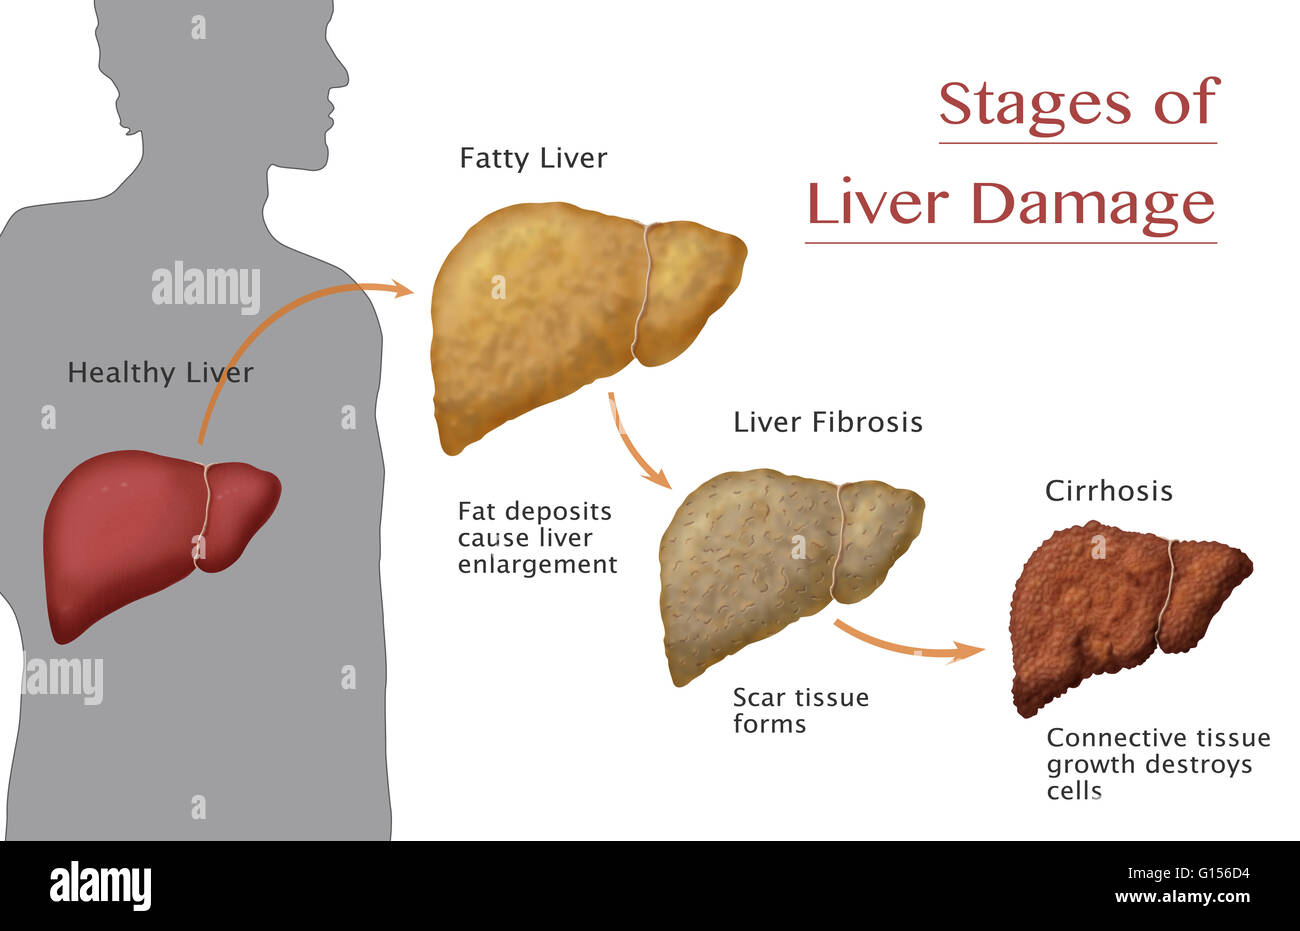 Image Result For Final Stages Of Liver